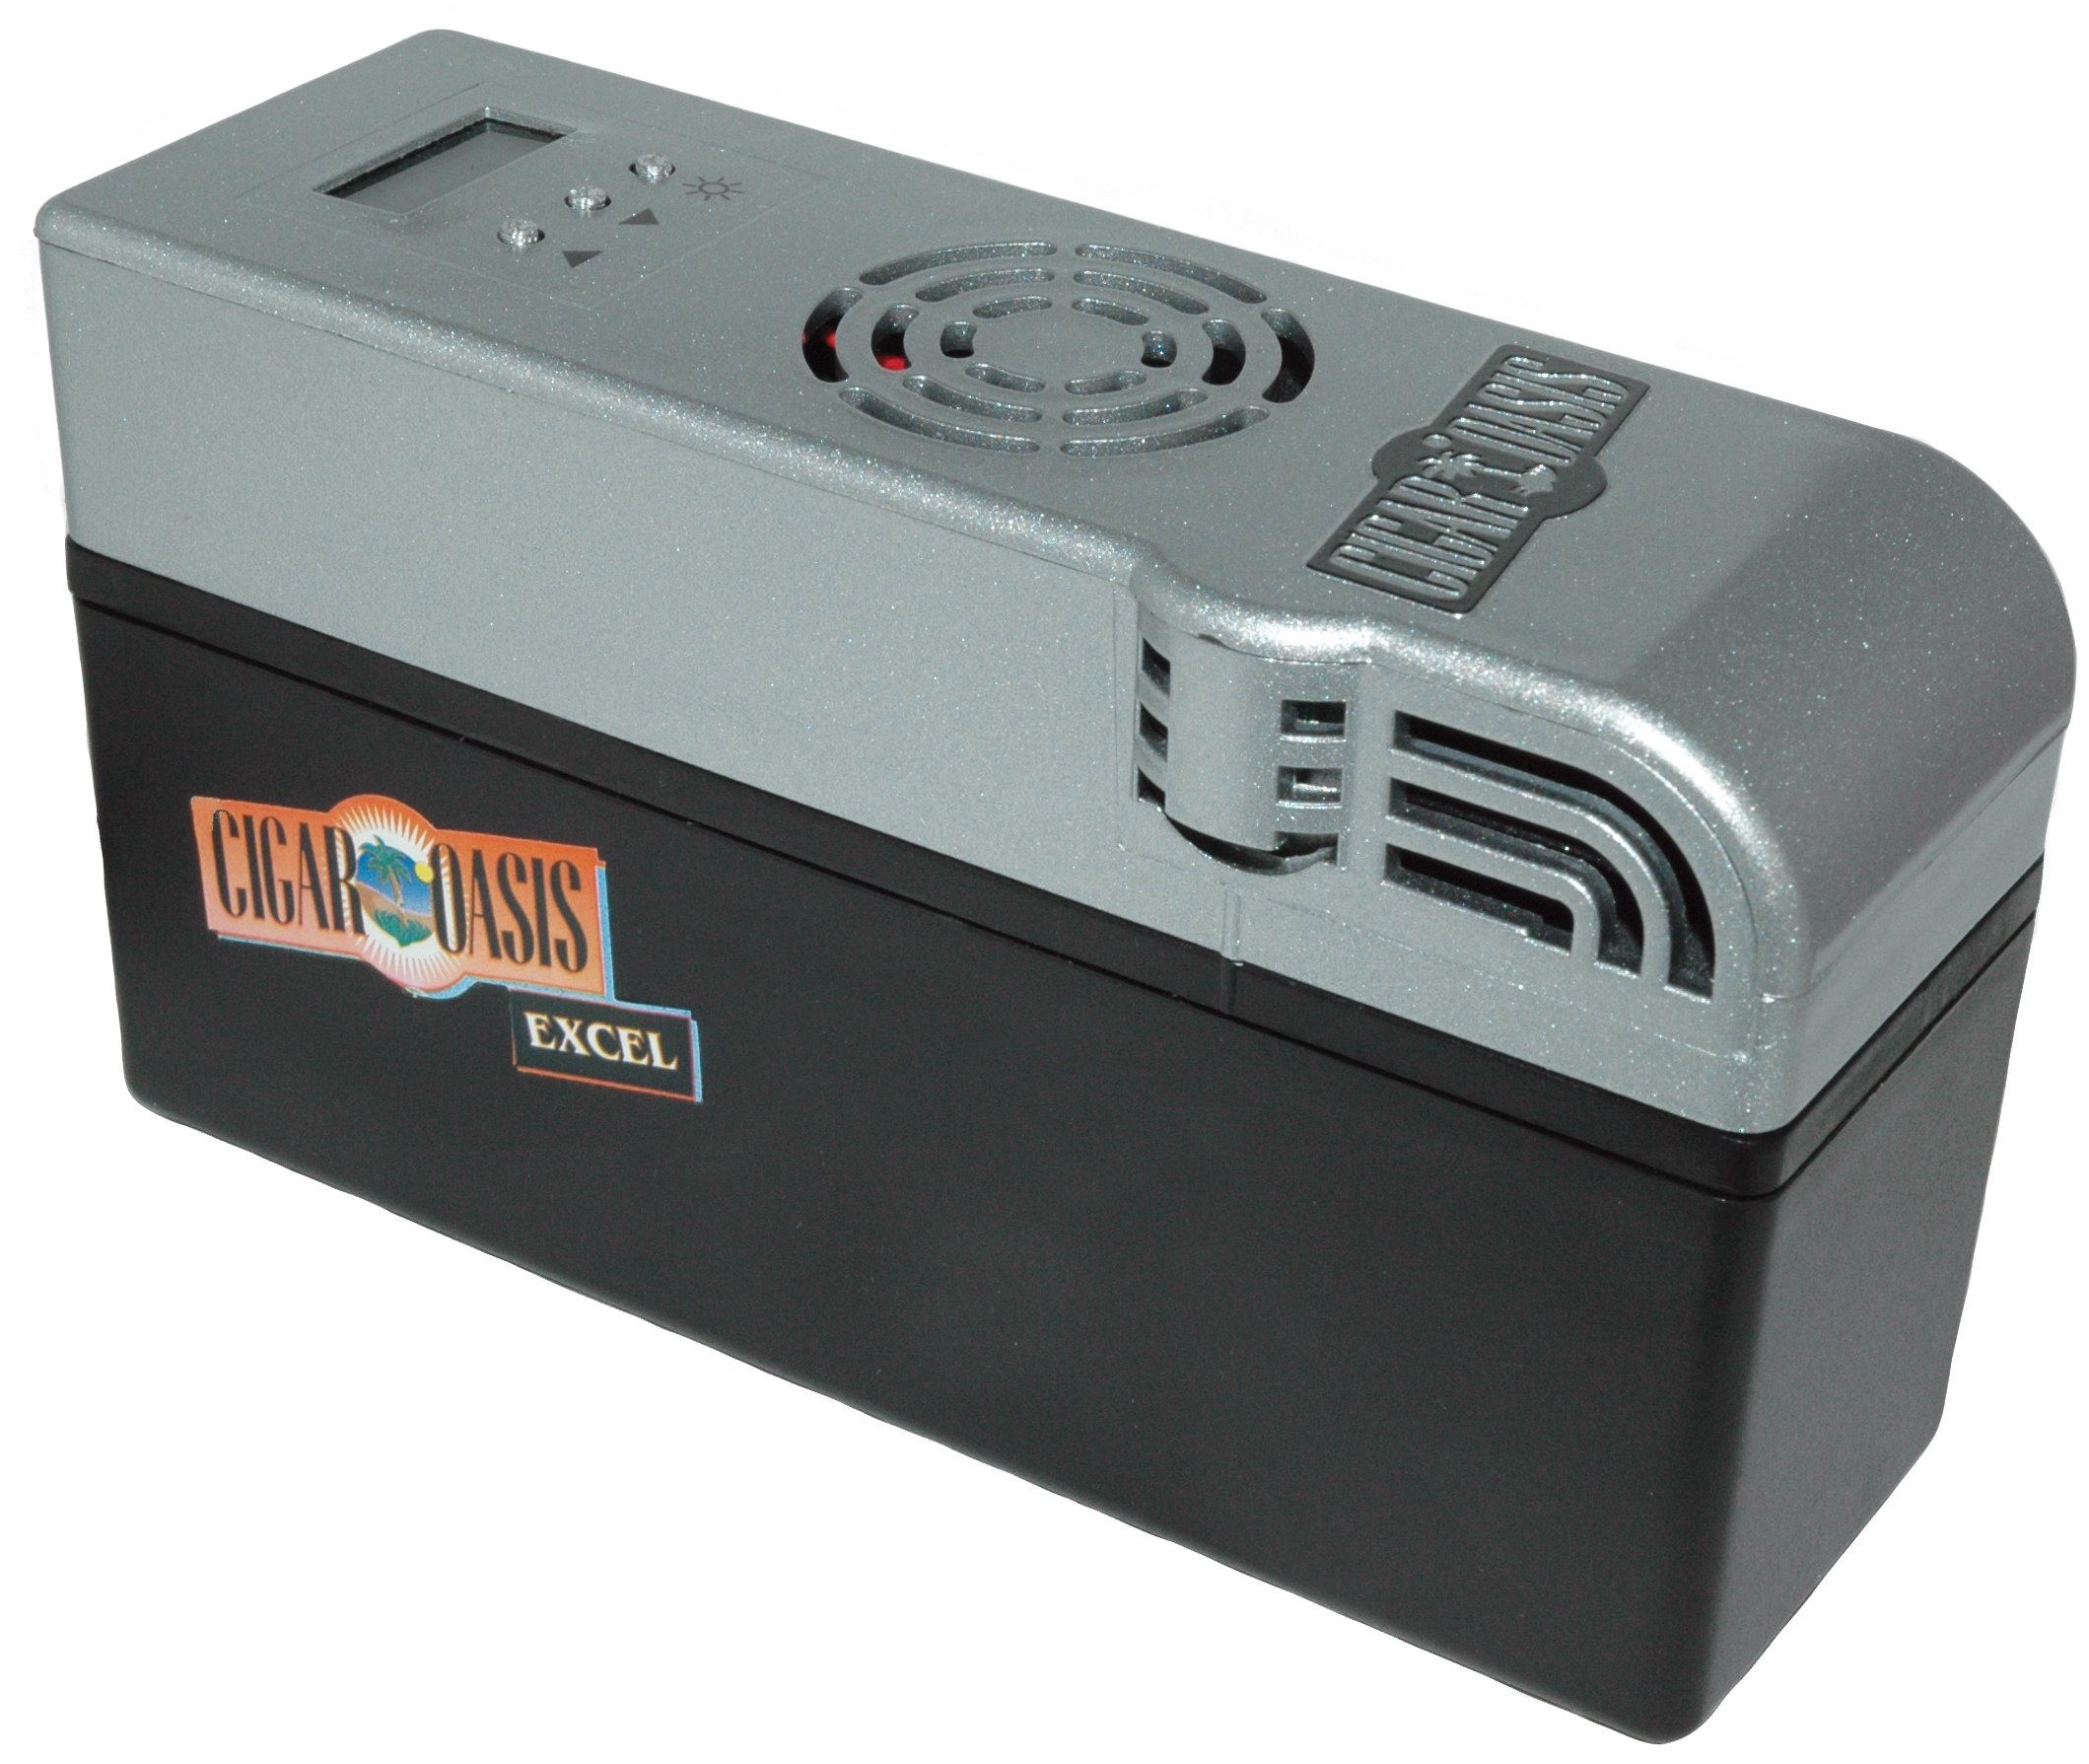 Cigar Oasis Excel Electronic Cigar Humidifier